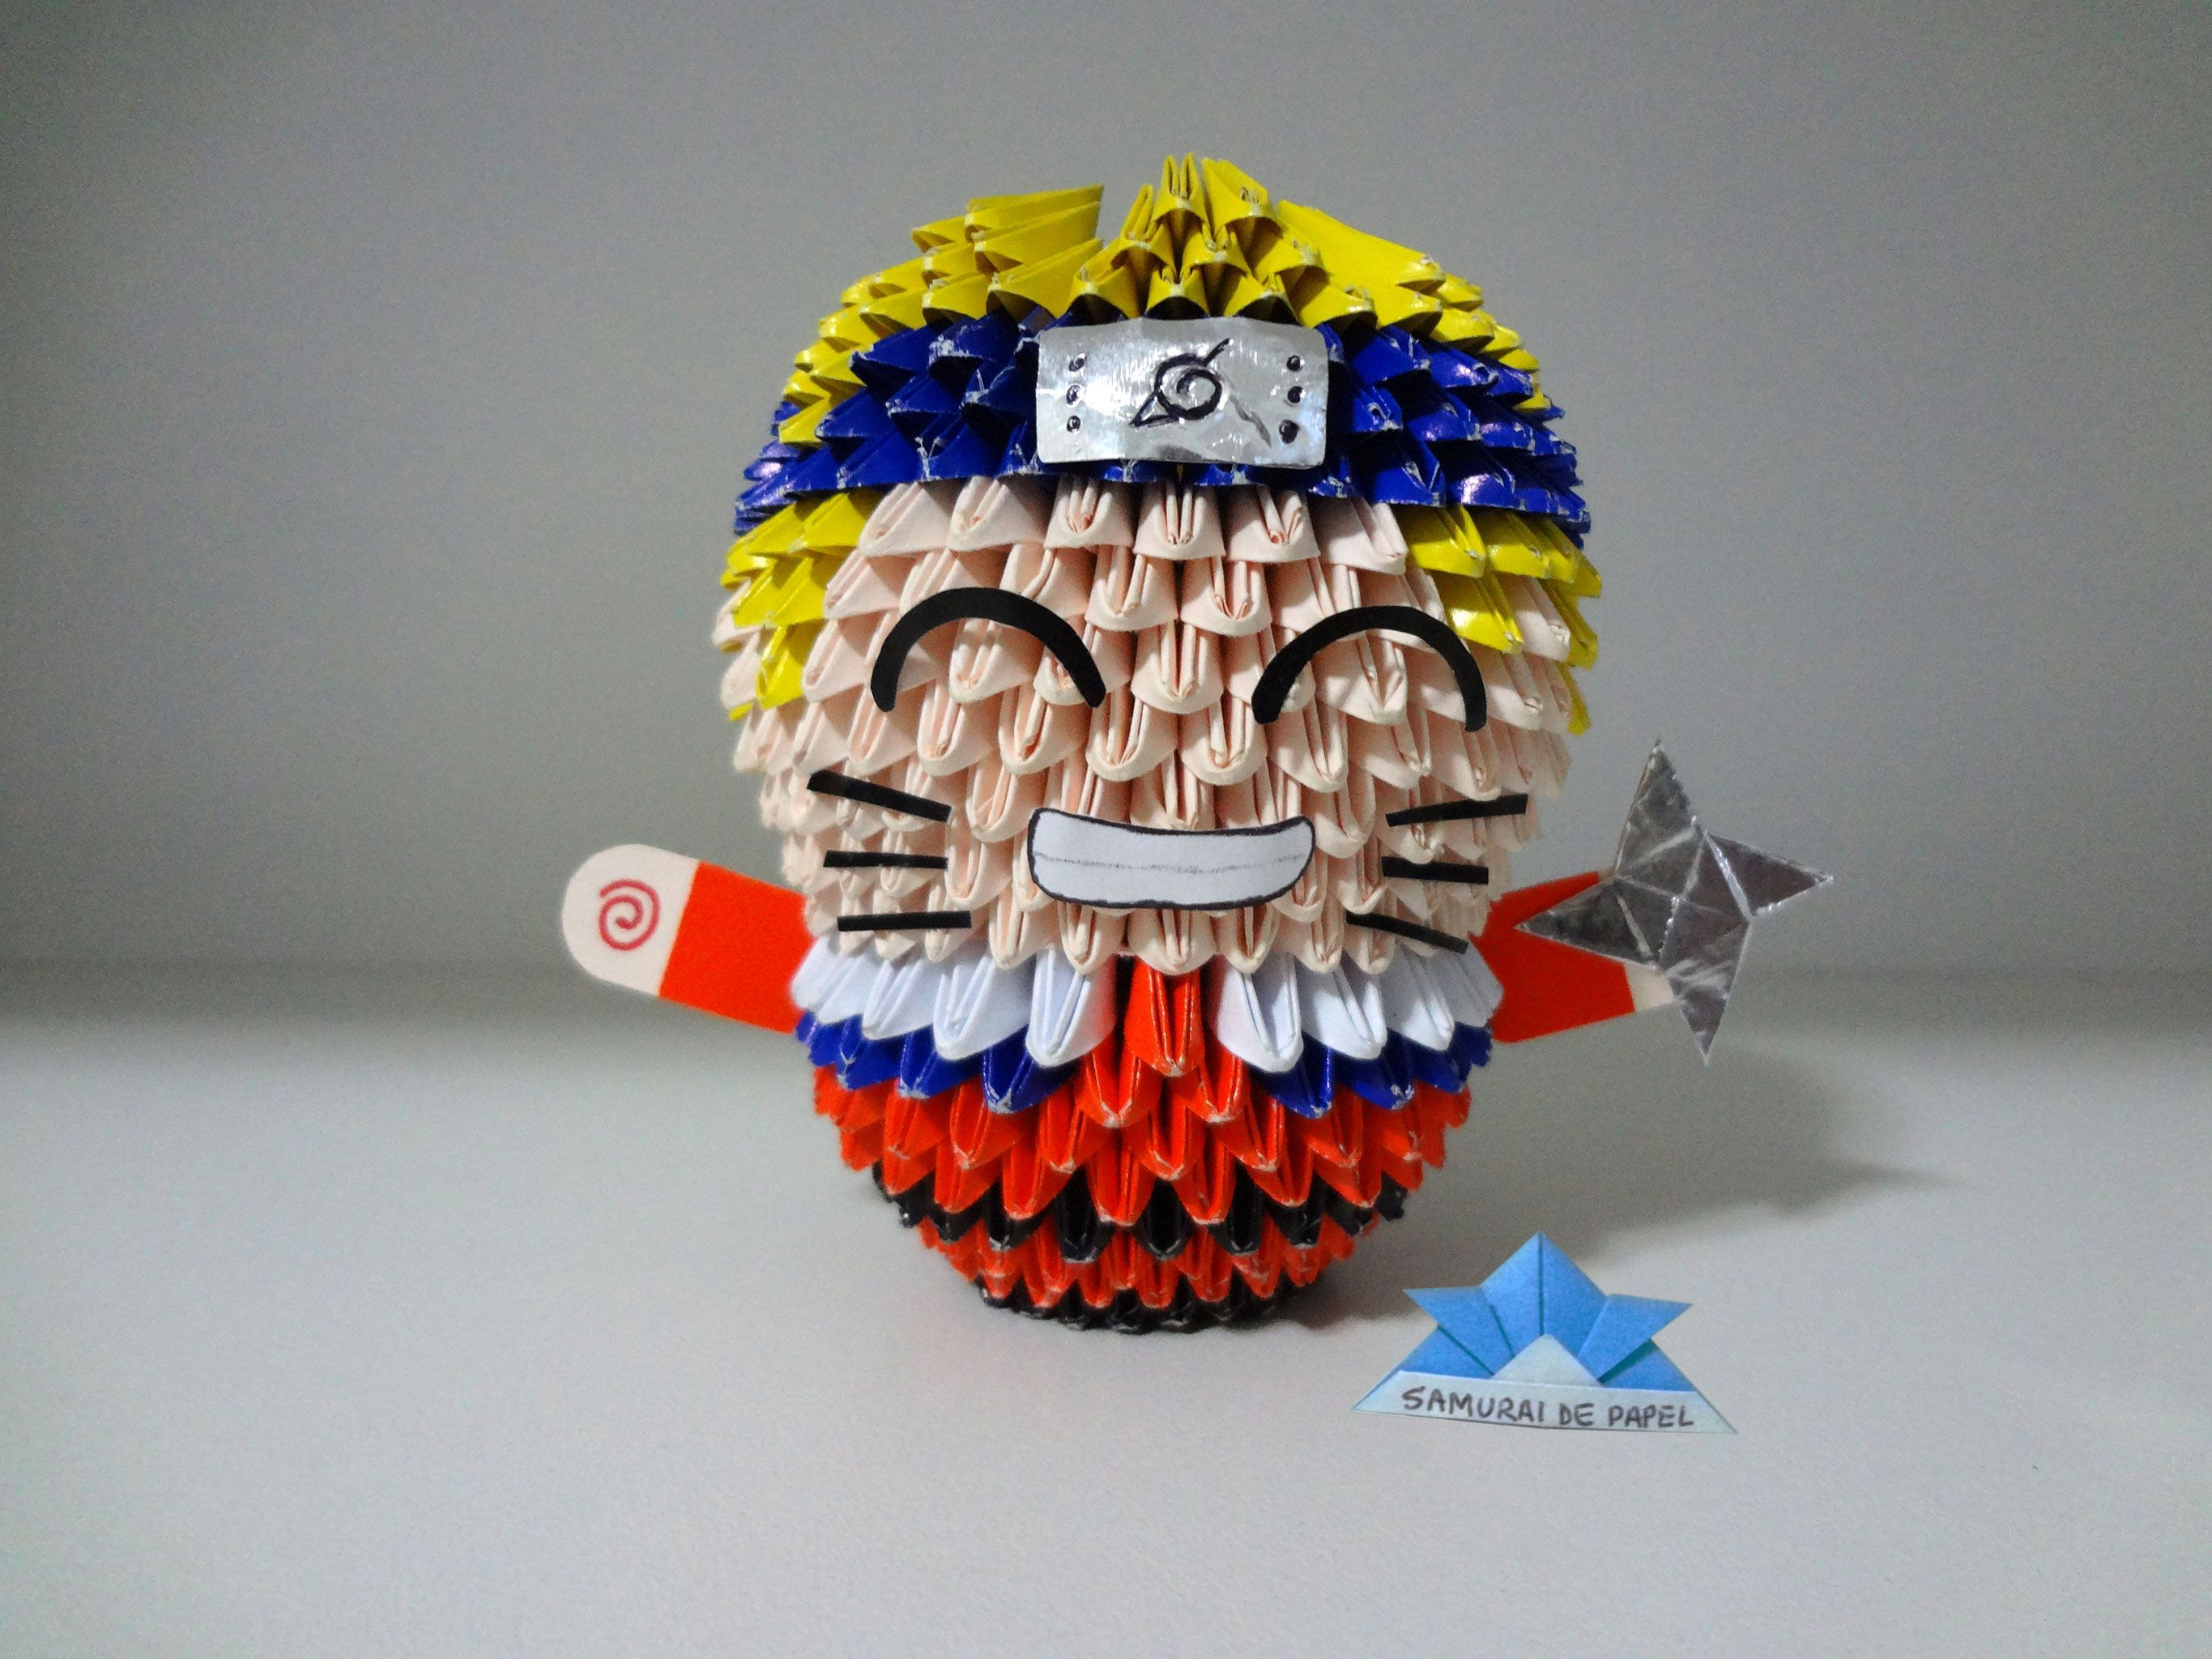 Origami 3d naruto 3d origami pinterest origami 3d and 3d origami 3d naruto jeuxipadfo Images